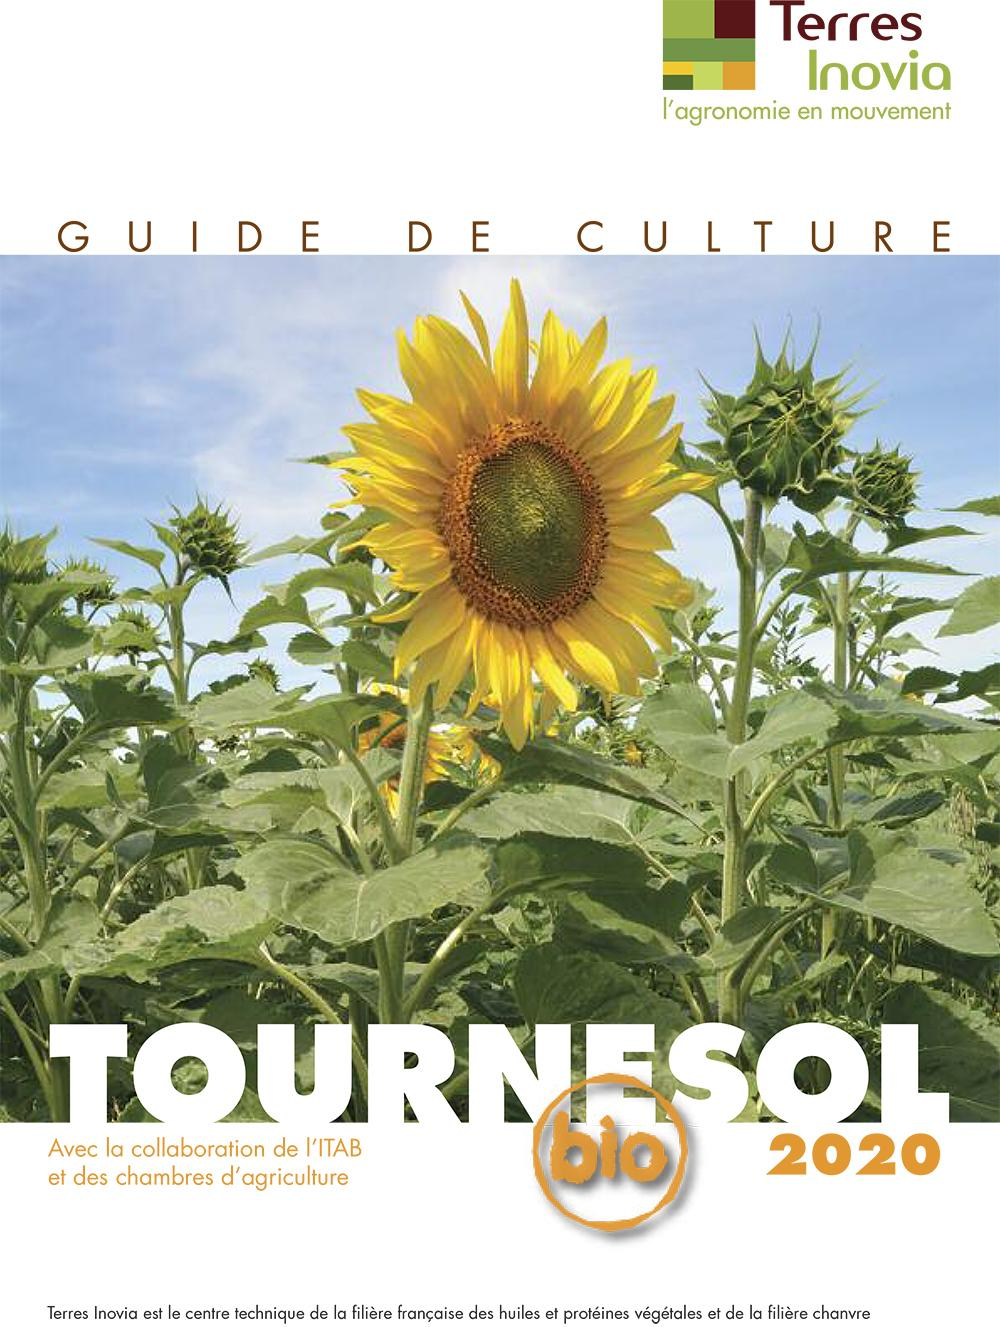 Guide de culture tournesol bio